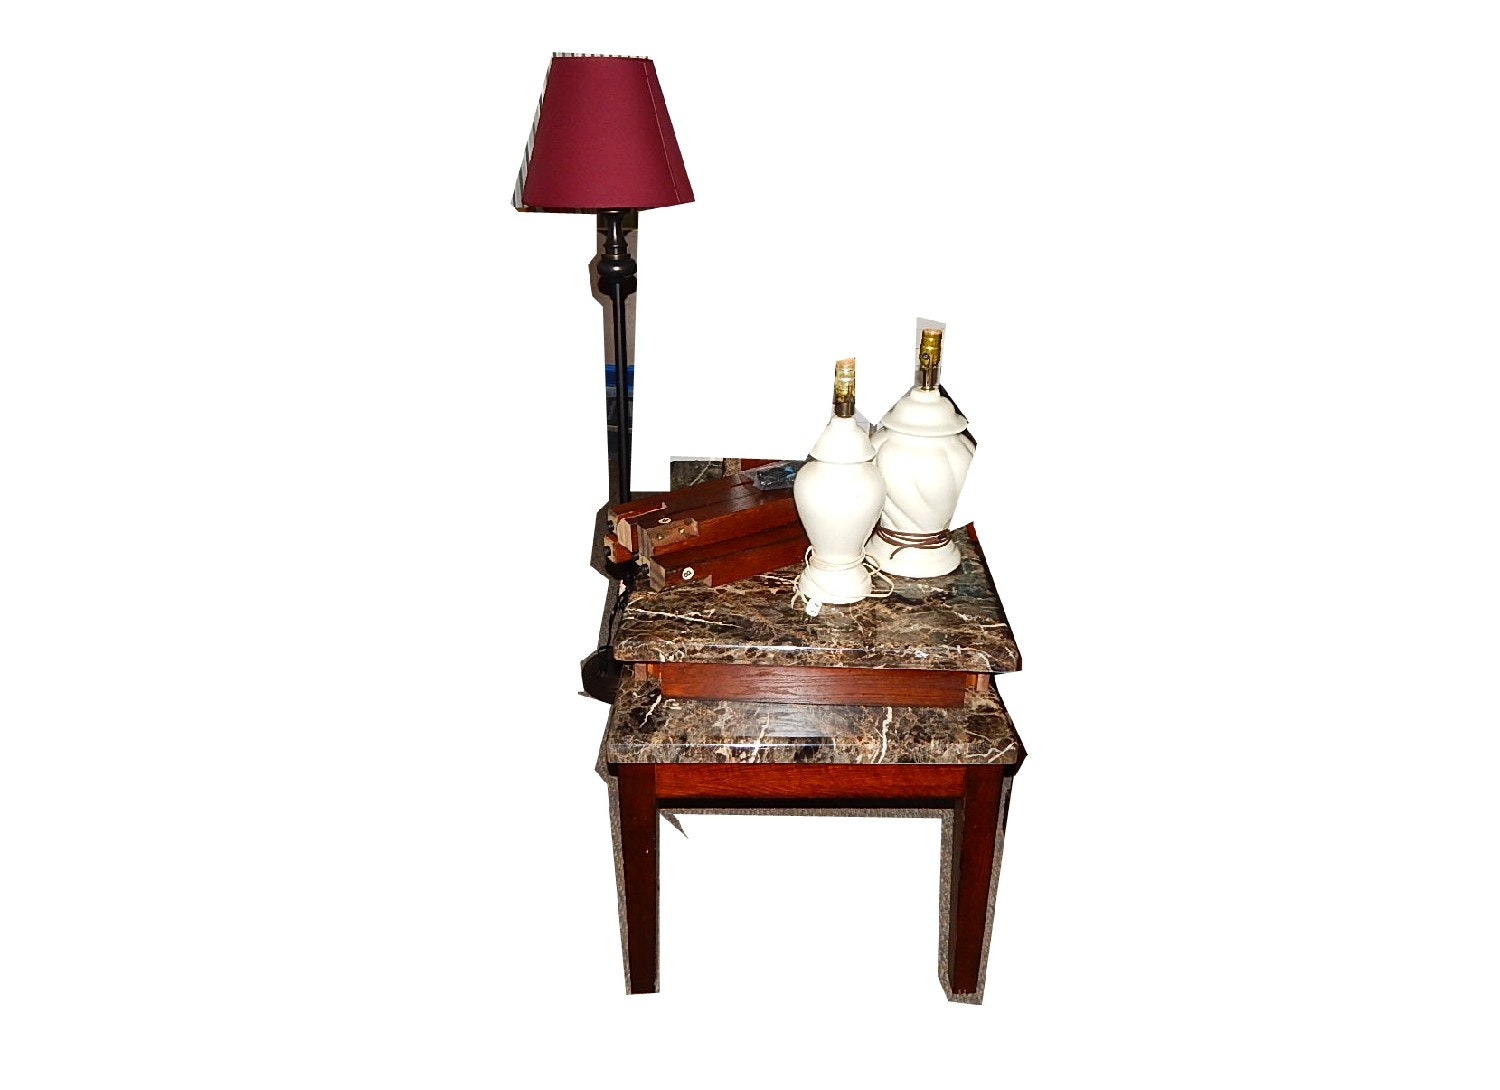 Three Piece Coffee Table Set With Floor Lamp And Two Table Lamps ...